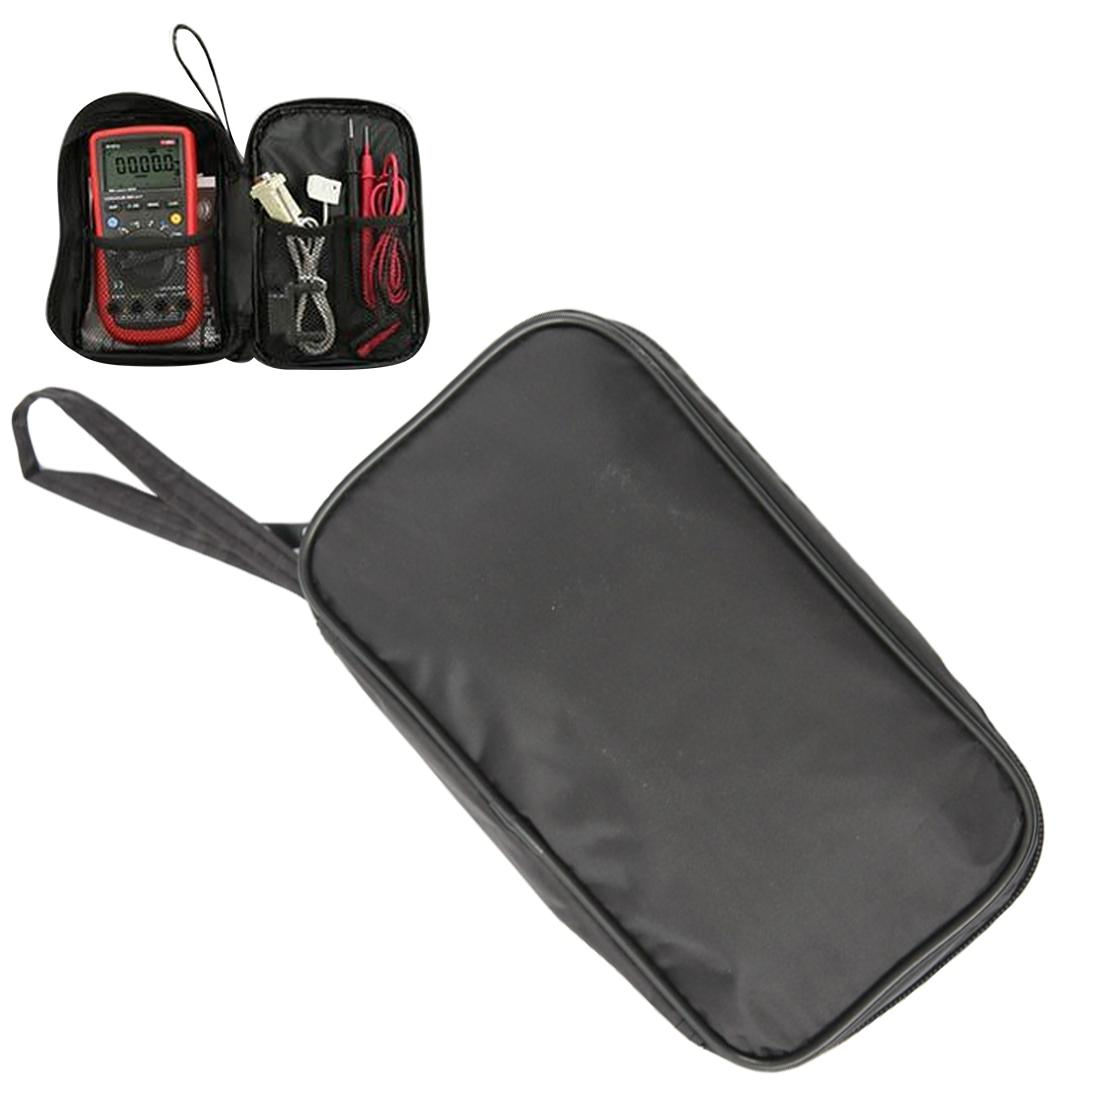 Durable 20*12*4cm Digital Cloth <font><b>Tools</b></font> <font><b>Bag</b></font> Multimeter <font><b>Canvas</b></font> <font><b>Bag</b></font> for UT61 Series